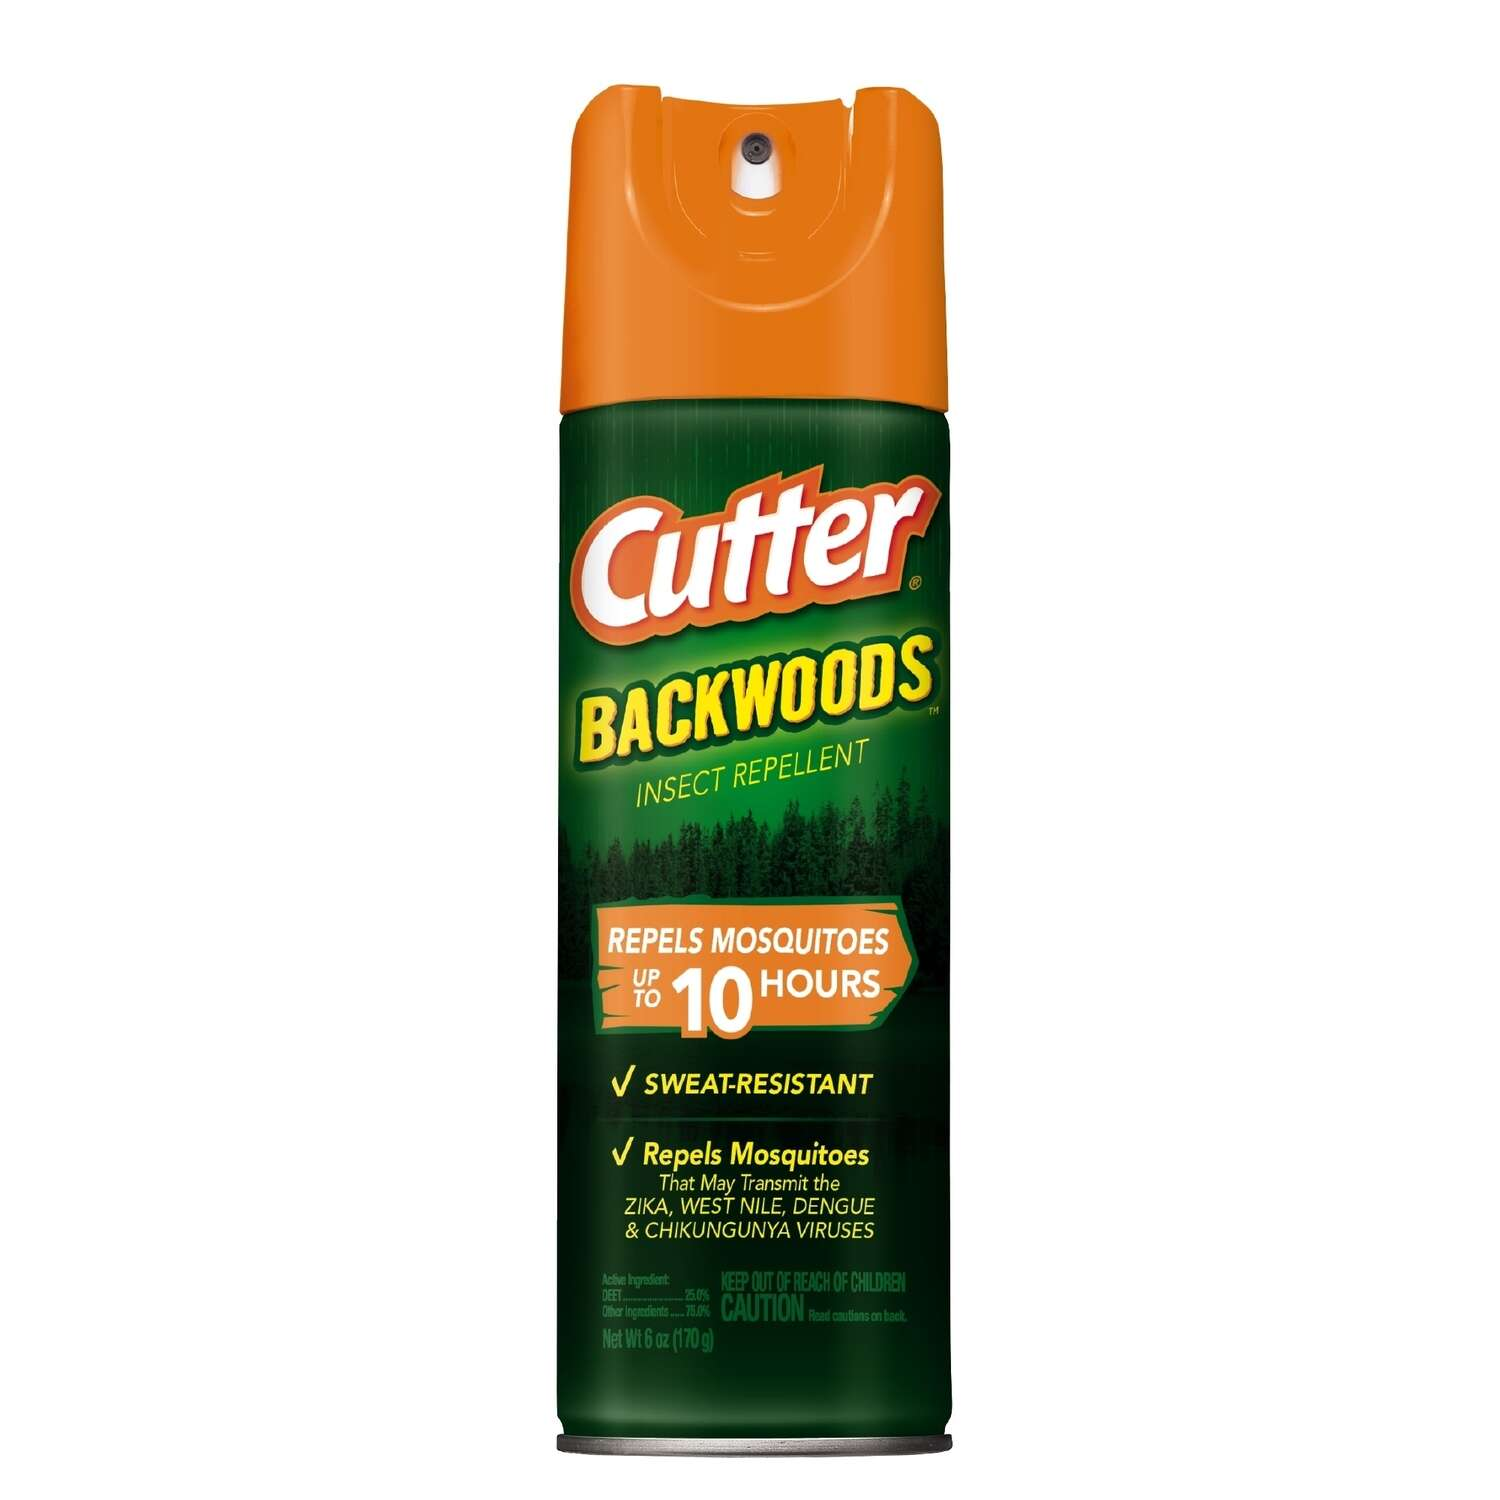 Cutter Backwoods Insect Repellent Liquid For Mosquitoes 6 oz.